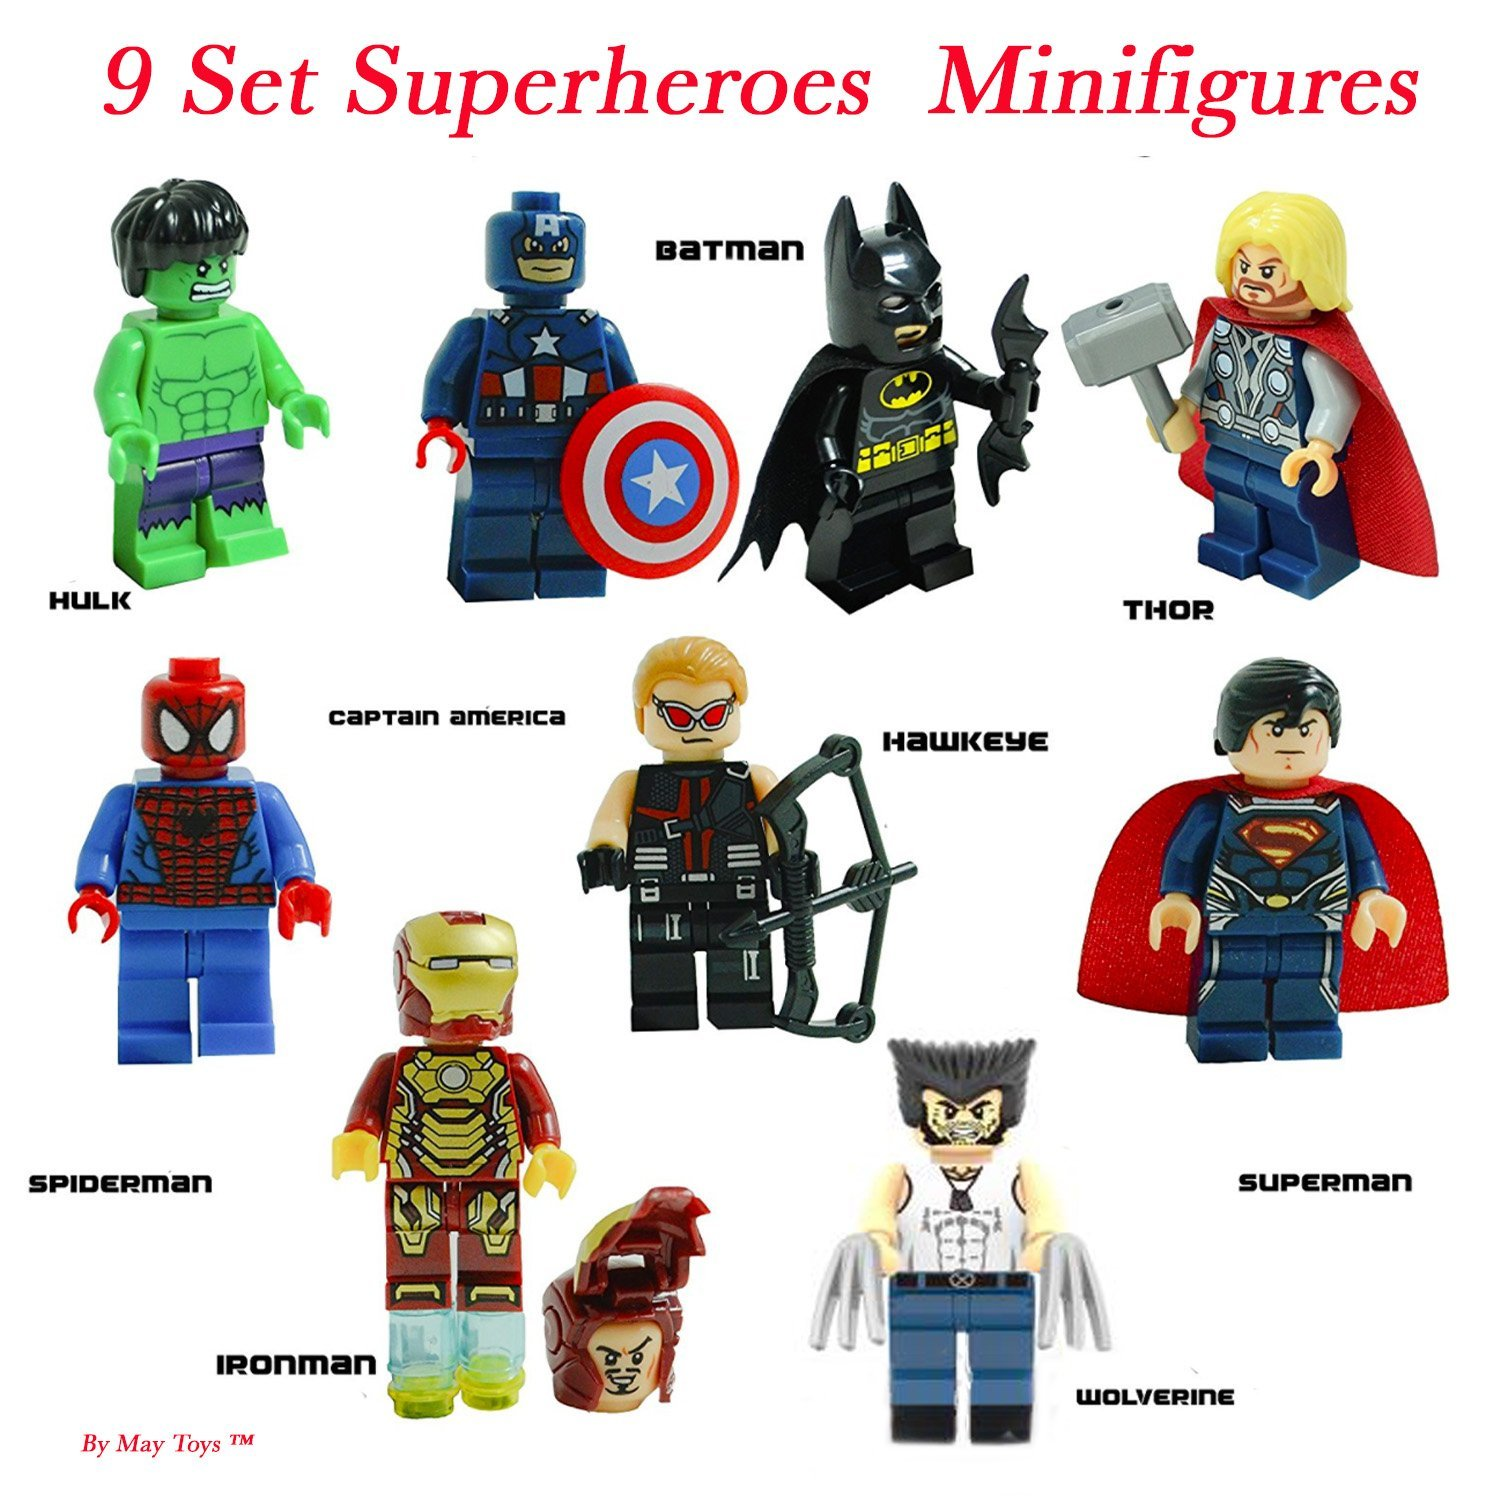 Super Heroes Figures, 9 Set Super Heroes Marvel & DC Avengers Mini Figures include Batman, Spiderman, Ironman,... by may-toys